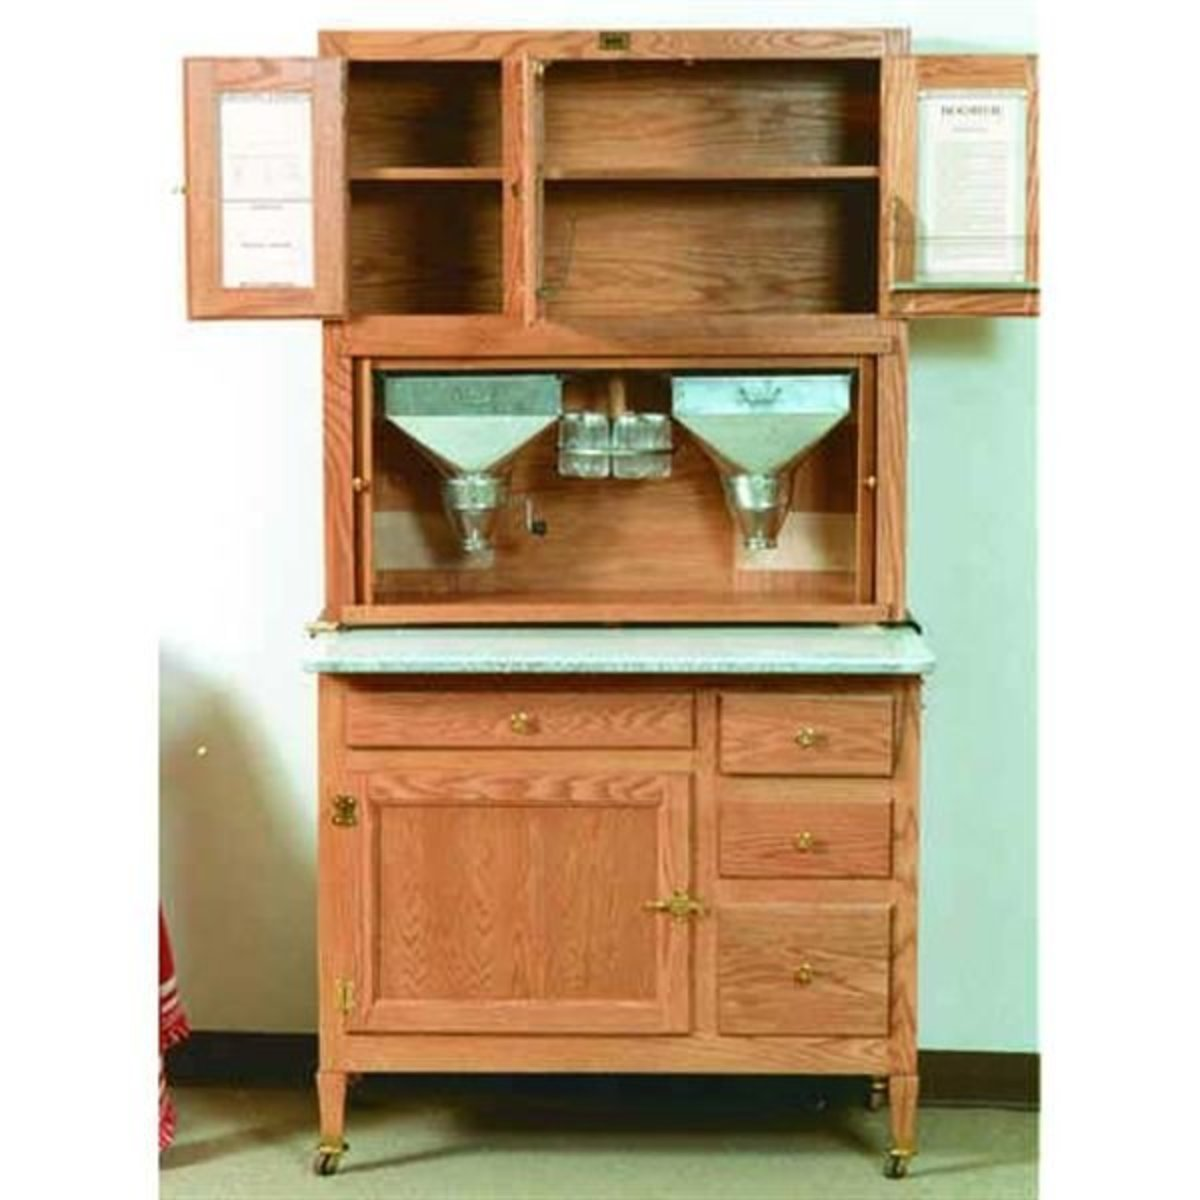 Hoosier Style Kitchen Cabinet American Furniture Design Woodworking Project Paper Plan